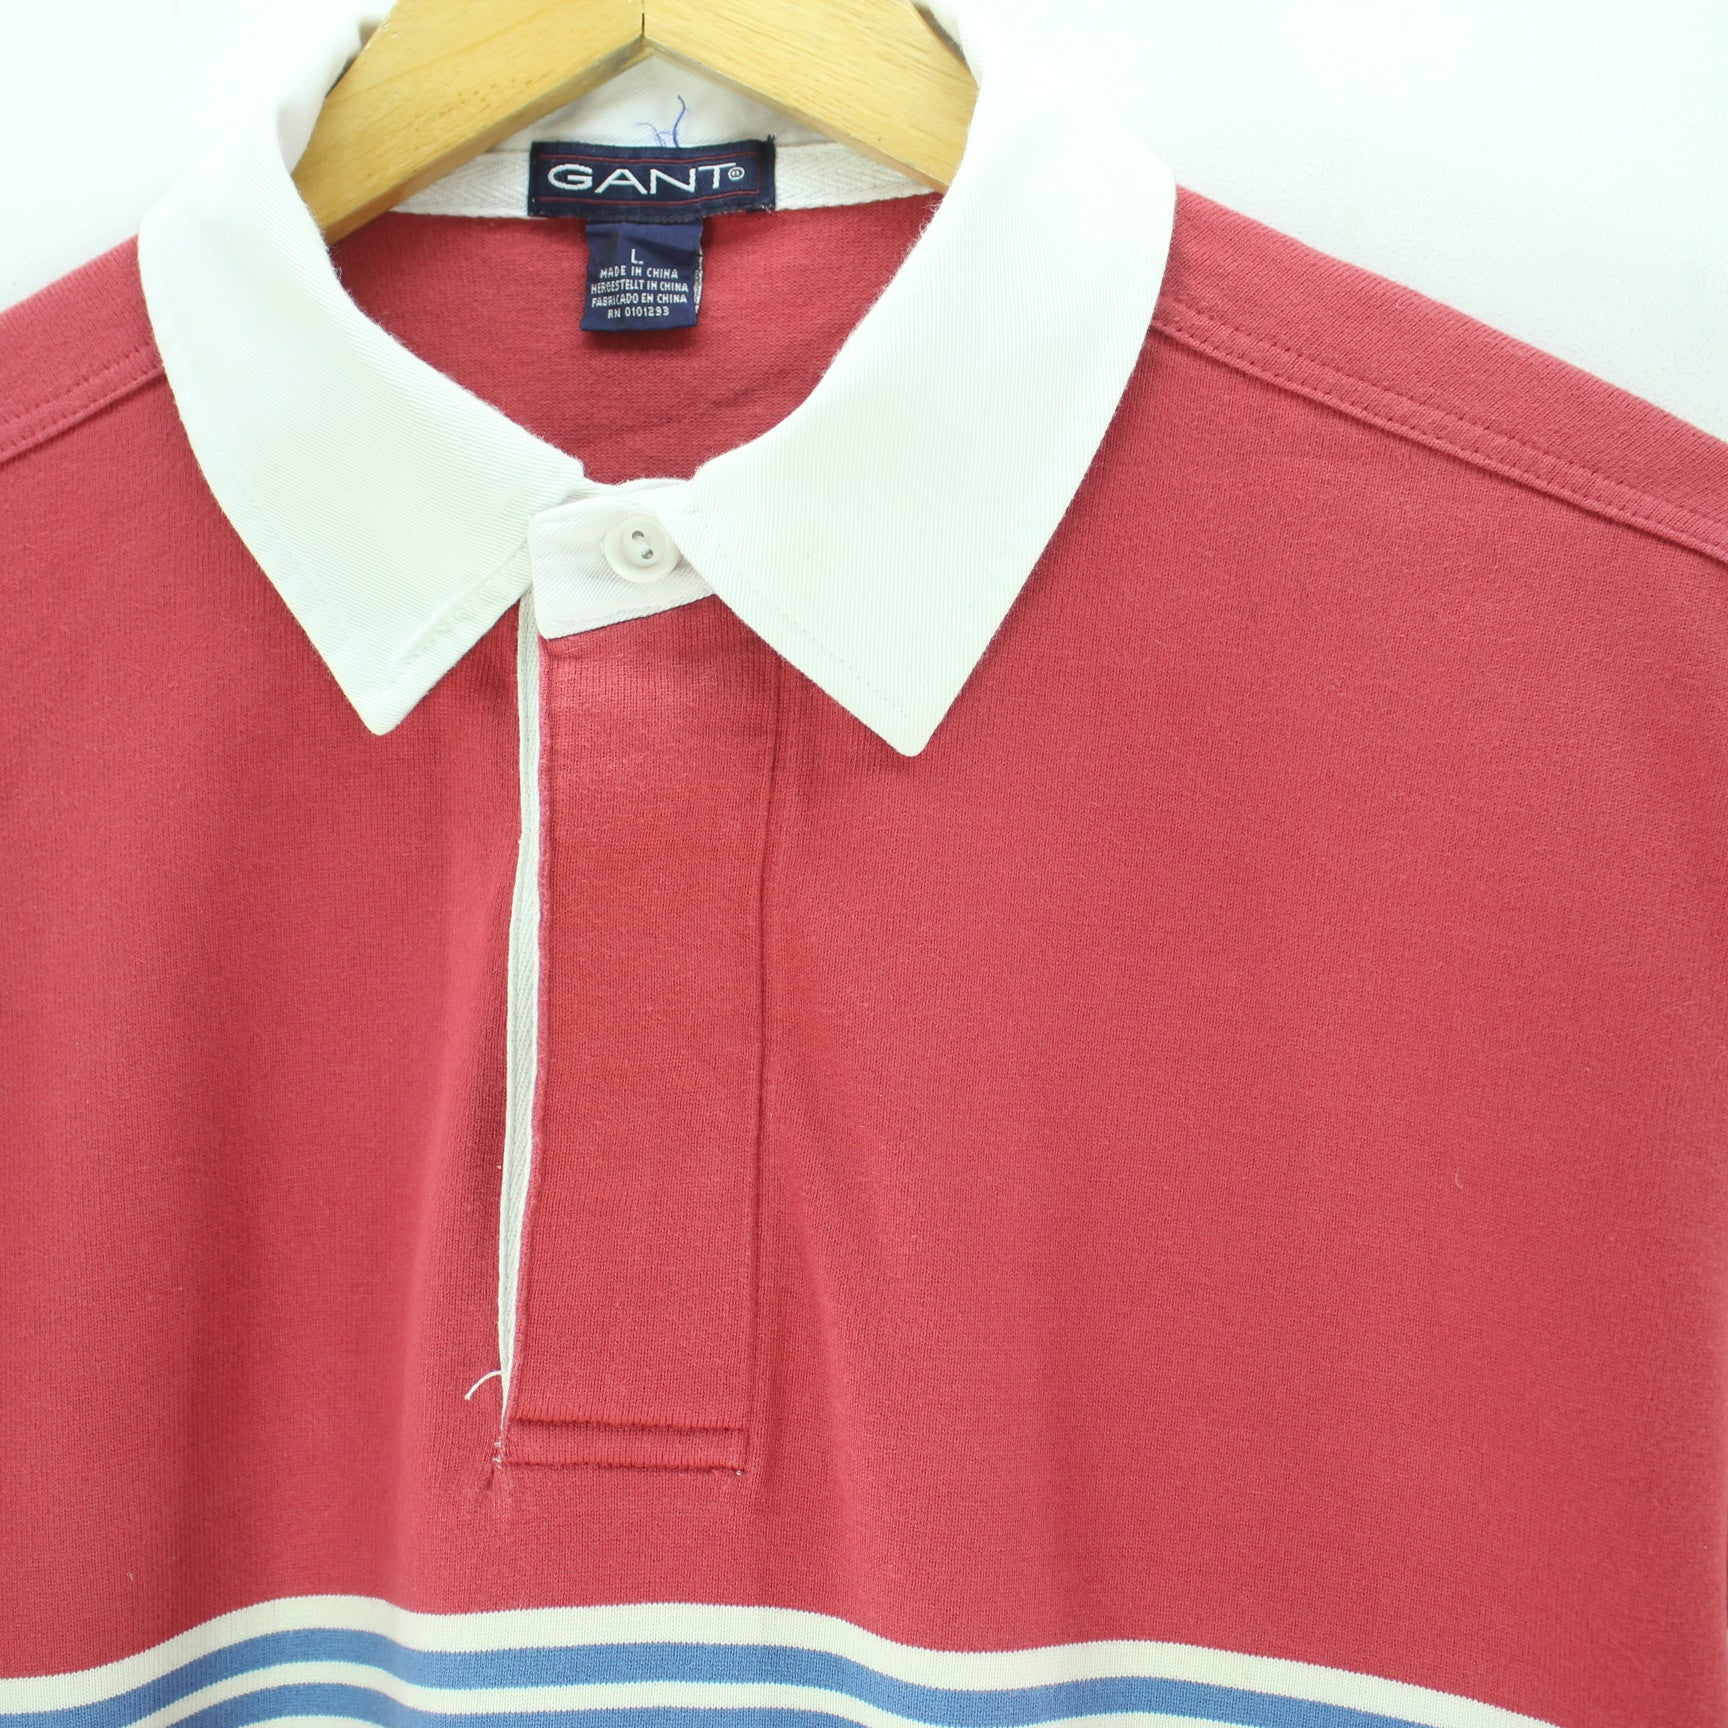 factory authentic best deals on united states Vintage Polo Shirts Uk   Azərbaycan Dillər Universiteti